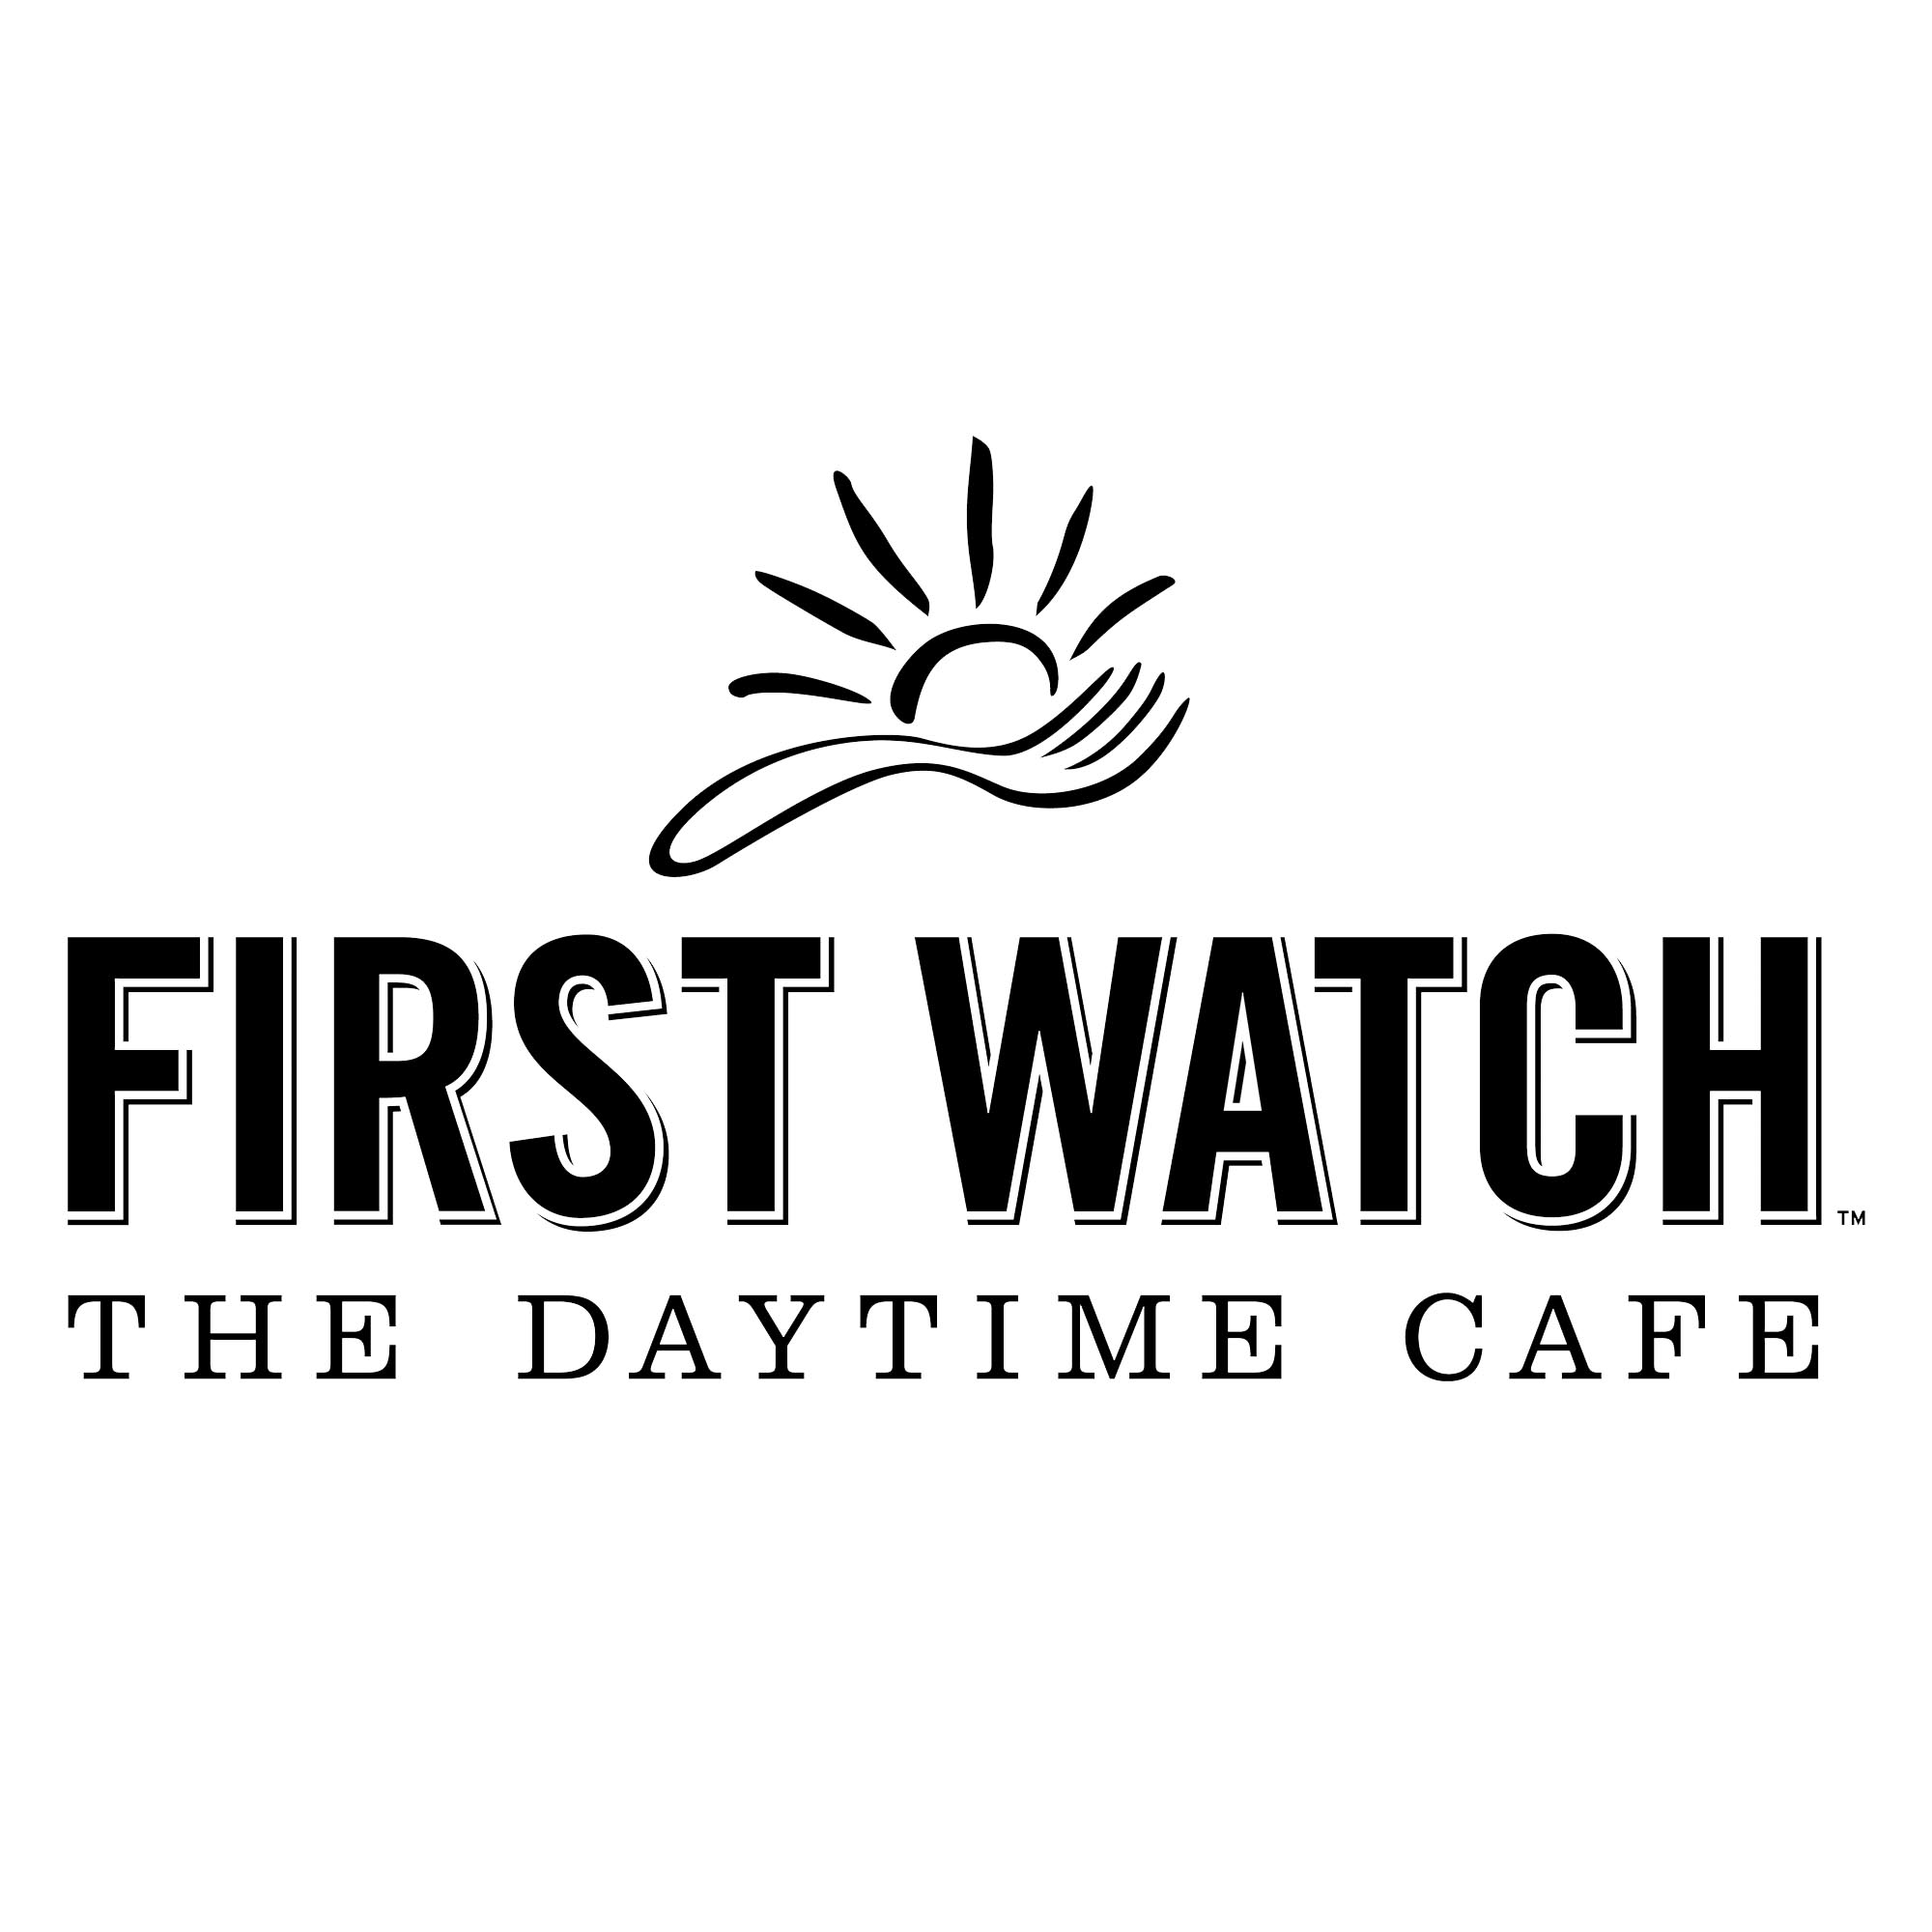 4First Watch